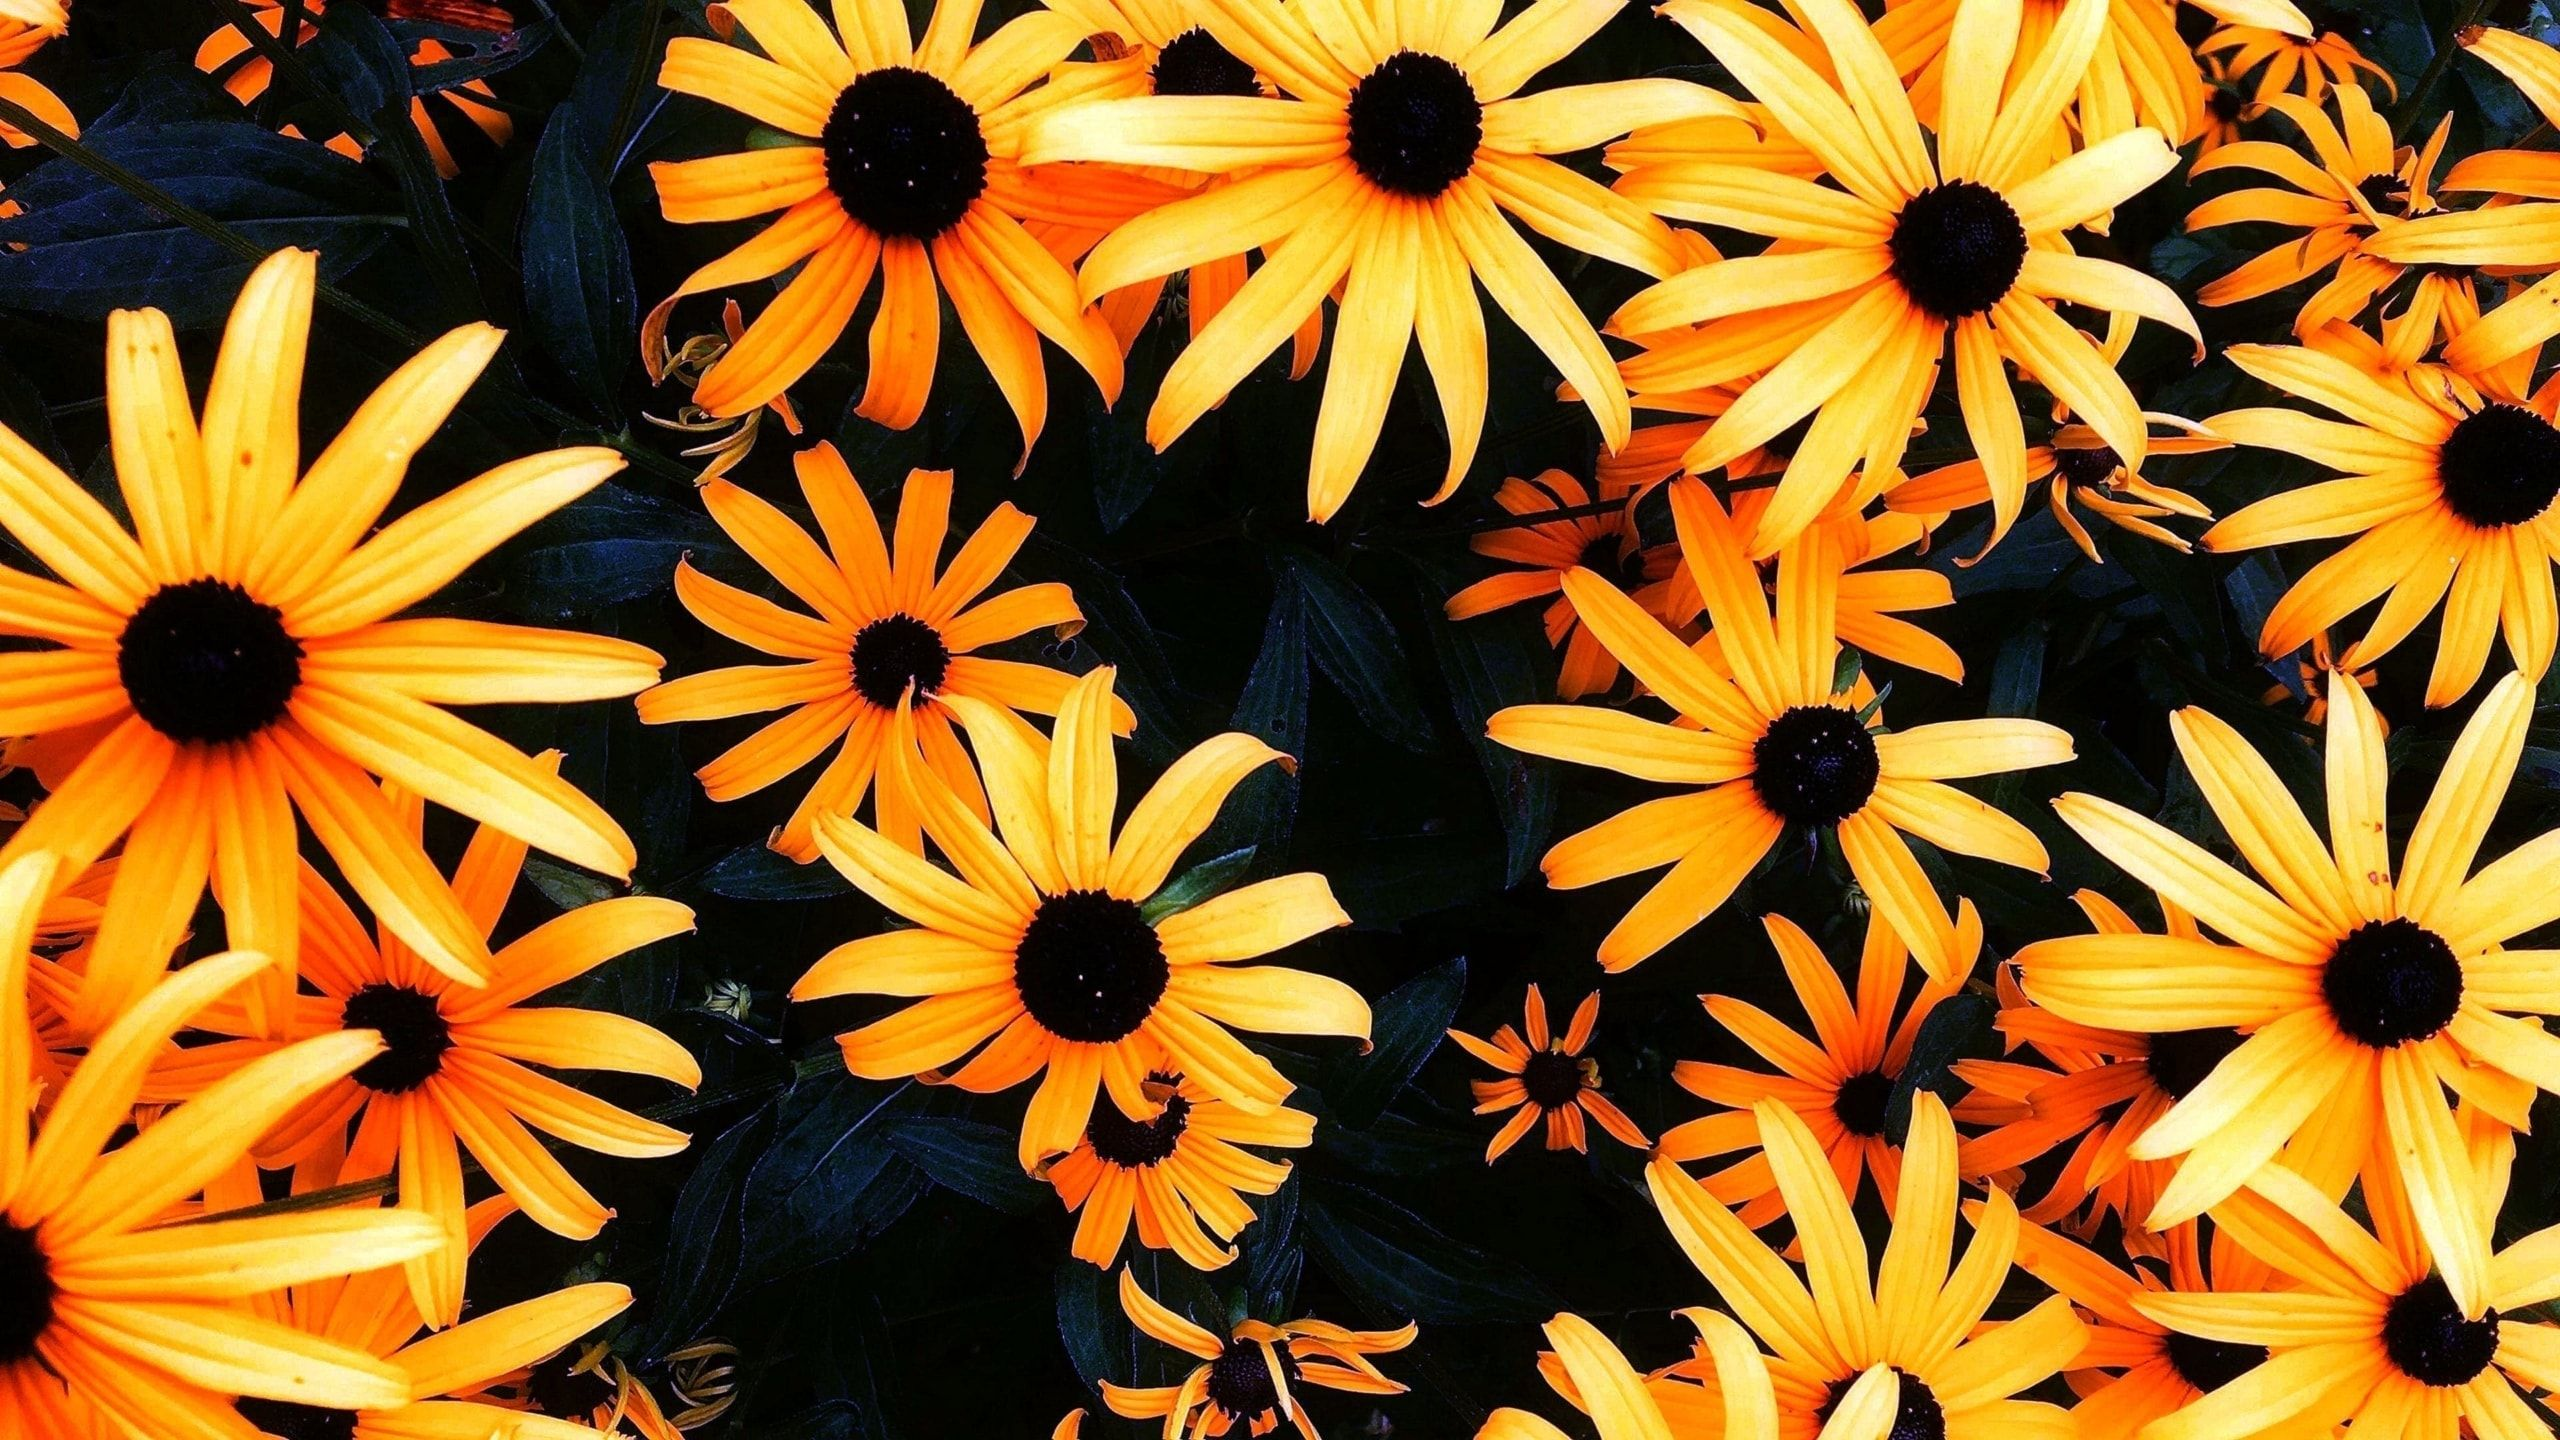 Sunflower Wallpapers For Chromebook   Sunflower Wallpapers For 2560x1440